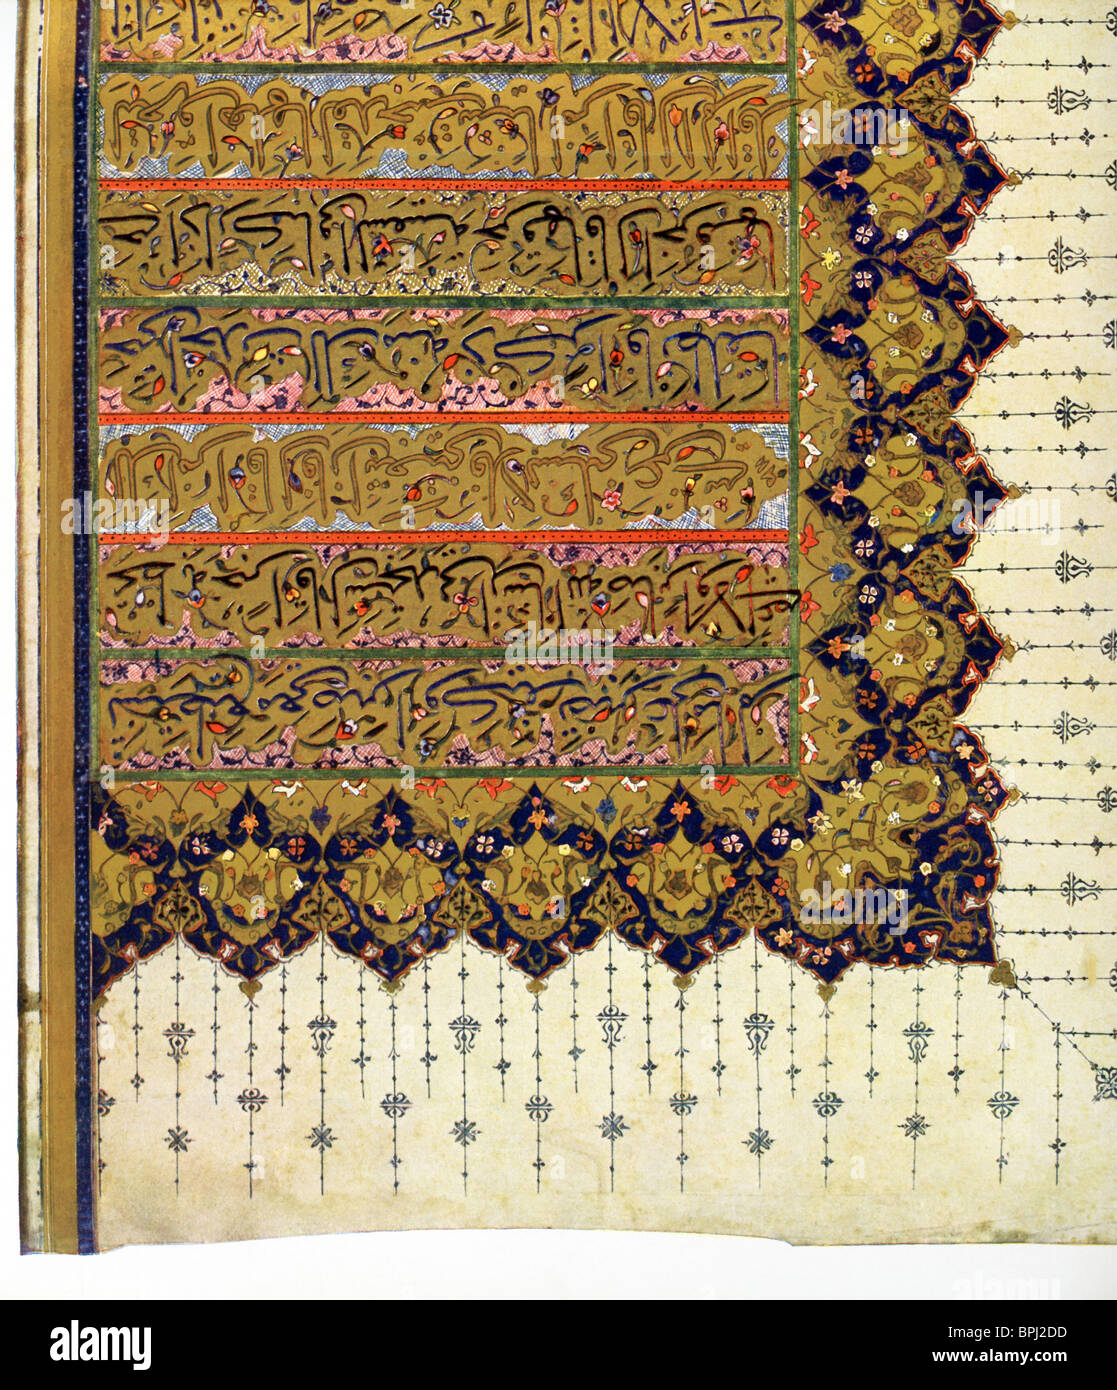 This hand-written section of the Quran from the 16th century shows a section of verses 66-73 of the 18th Sura. - Stock Image